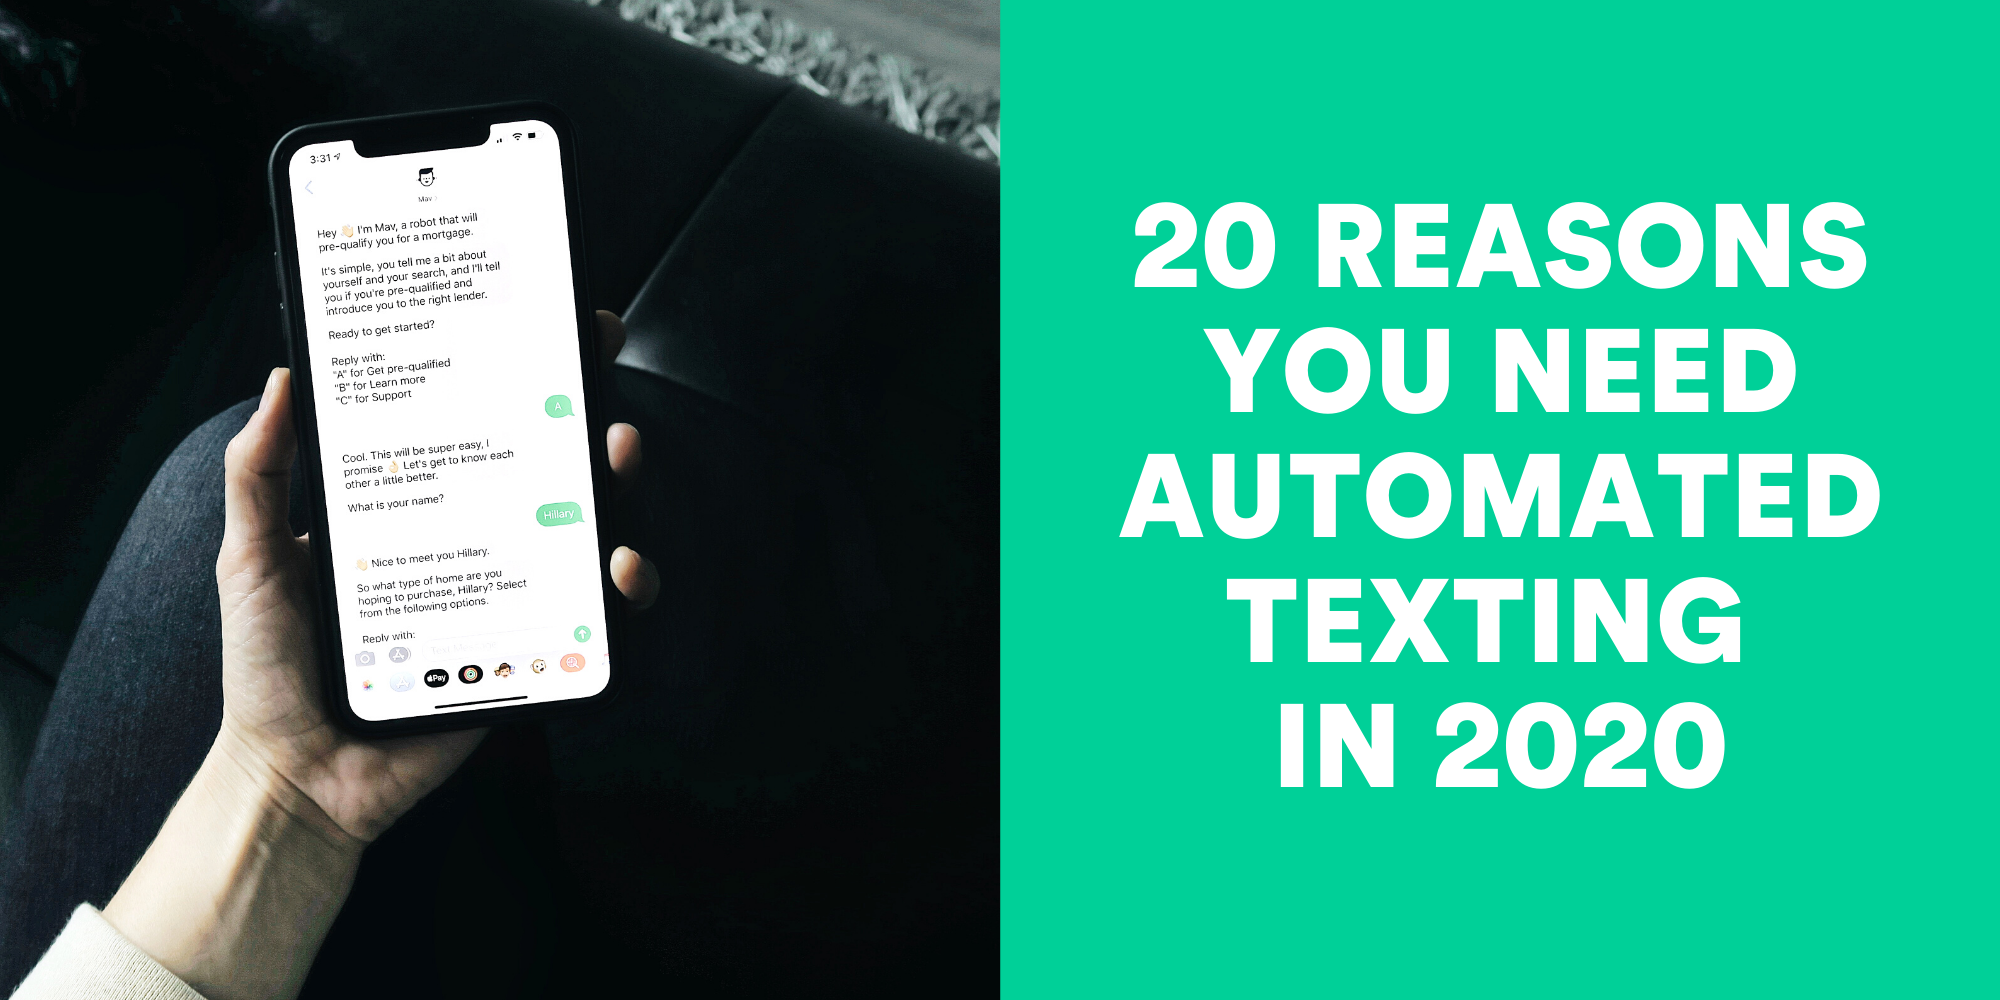 20 Reasons Why You Need Automated Texting in 2020